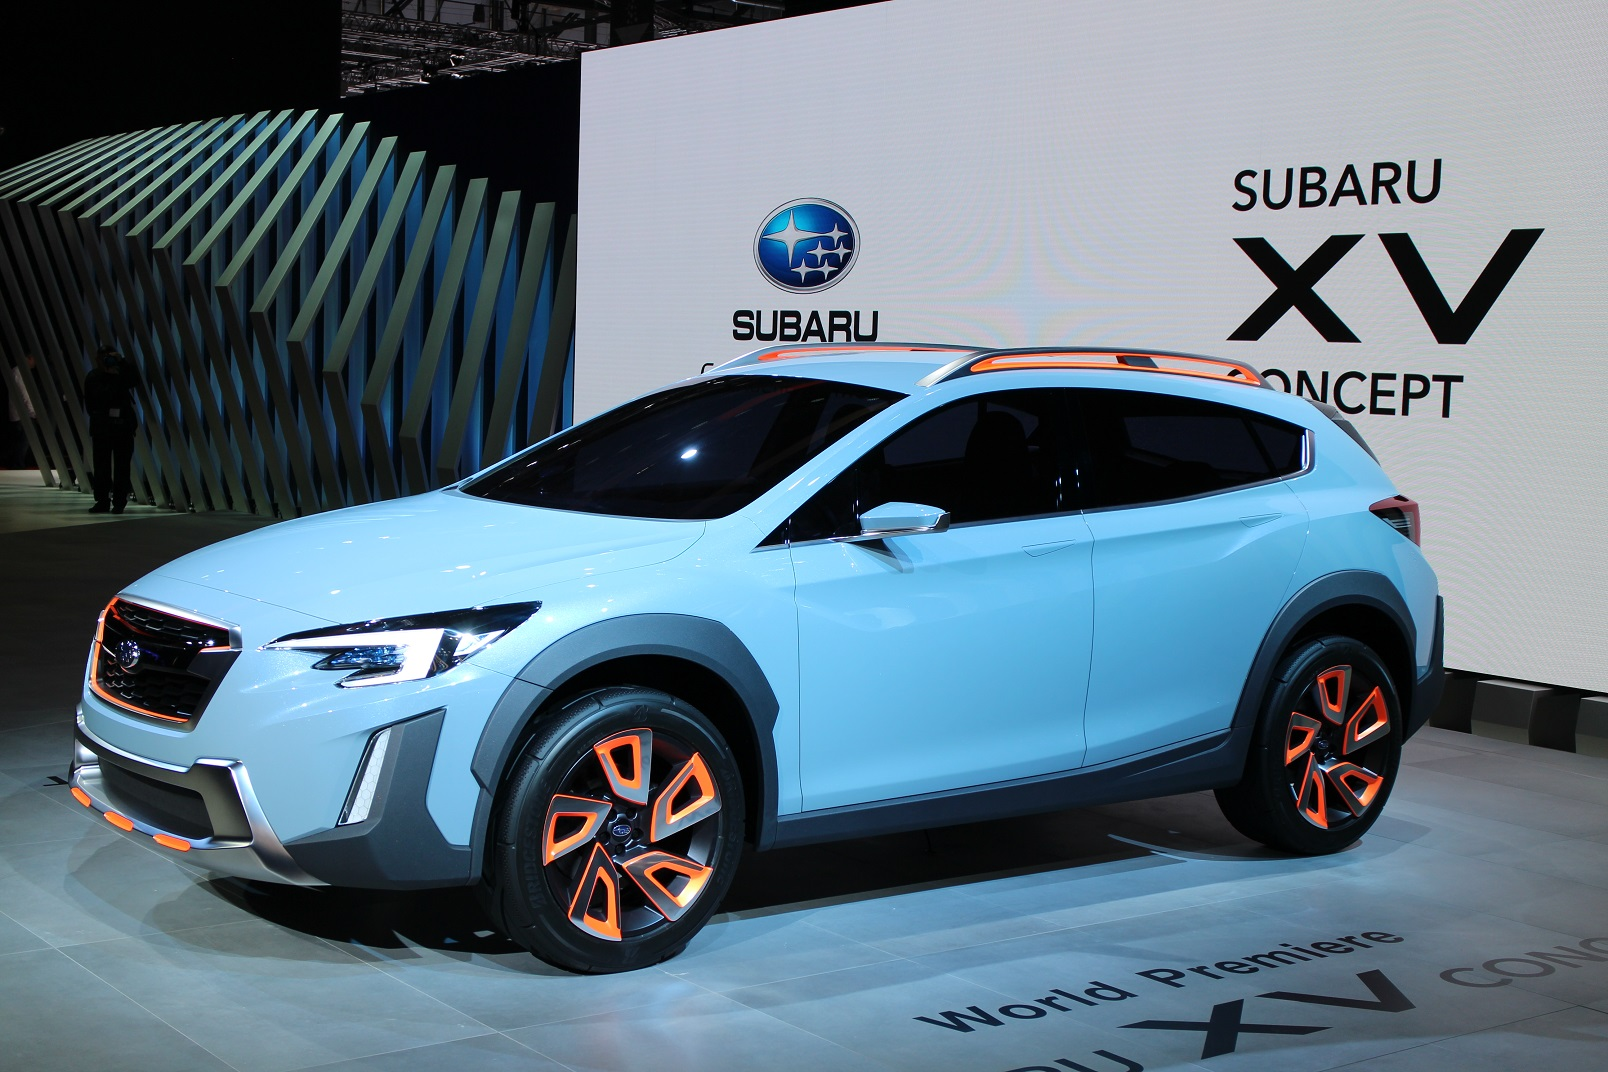 Subaru S New Xv Concept Hints At Next Gen Crosstrek Live Photos And